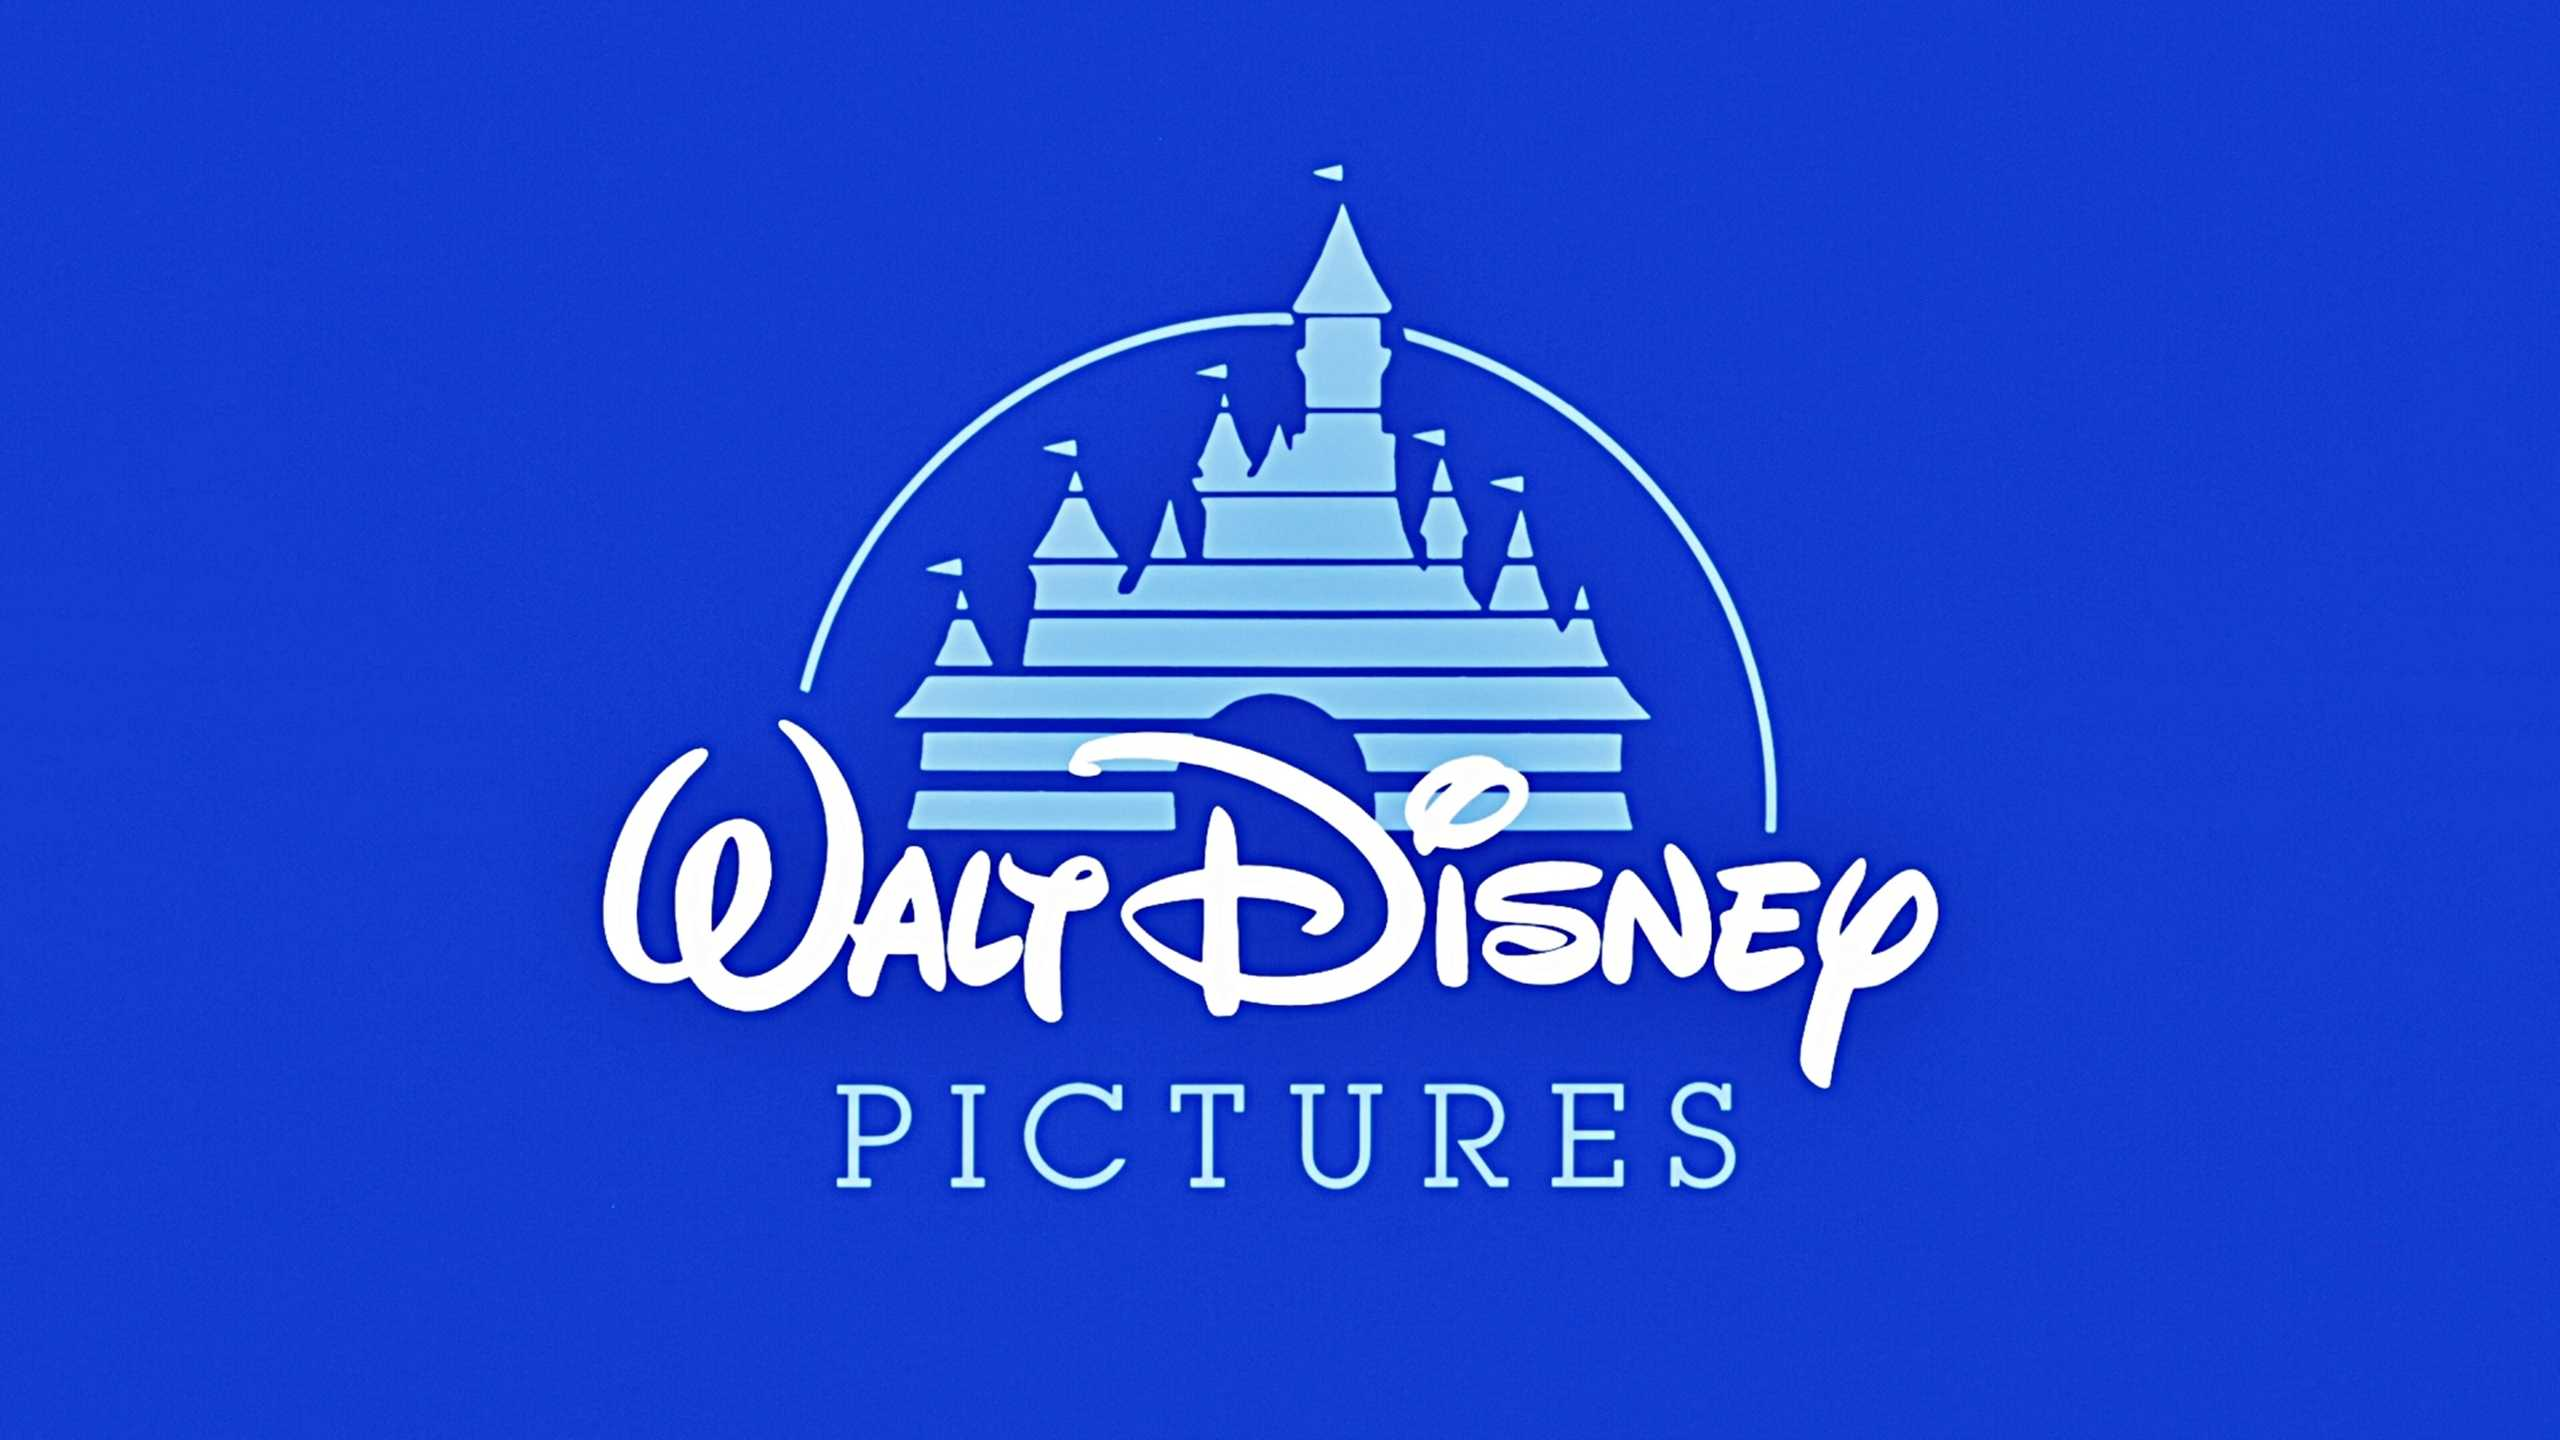 Walt-Disney-Screencaps-The-Walt-Disney-Logo-walt-disney-characters-31872968-2560-1440